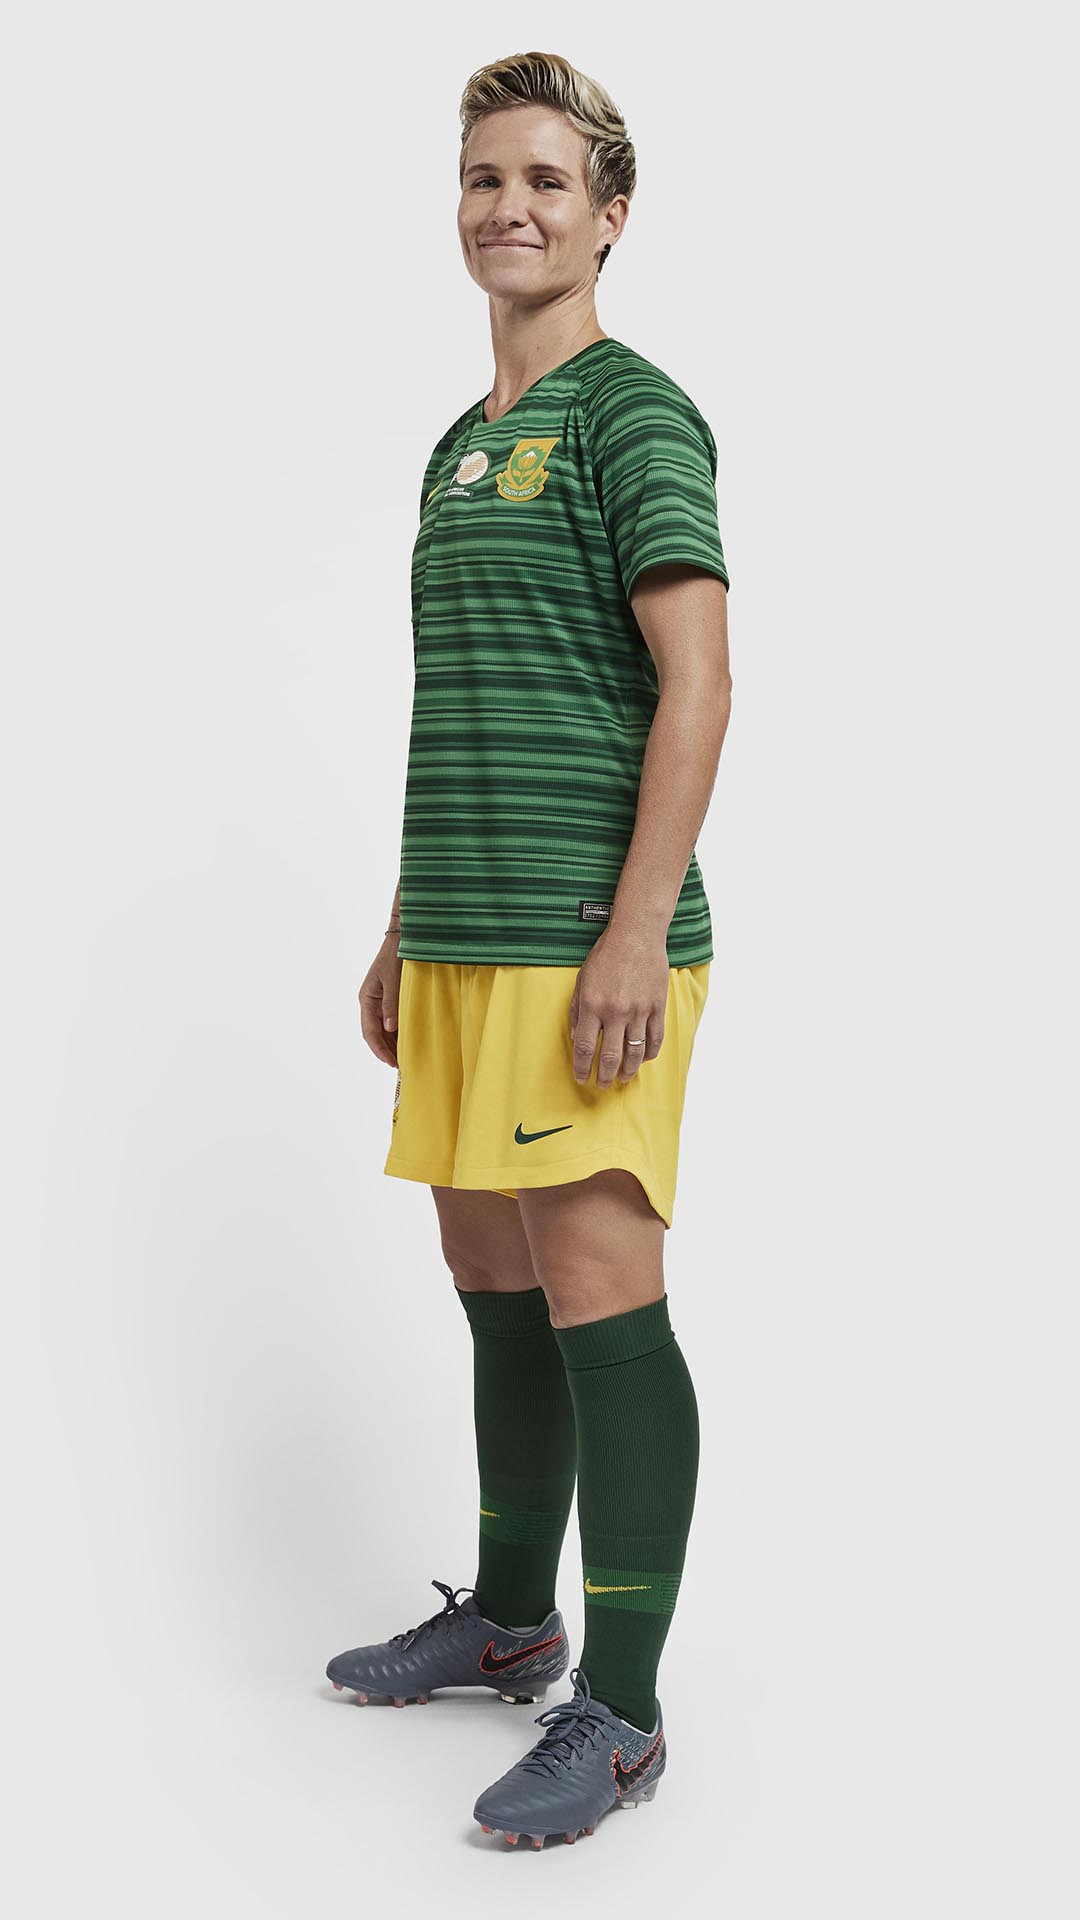 Nike_National_Team_Kit_Südafrika_2.jpg